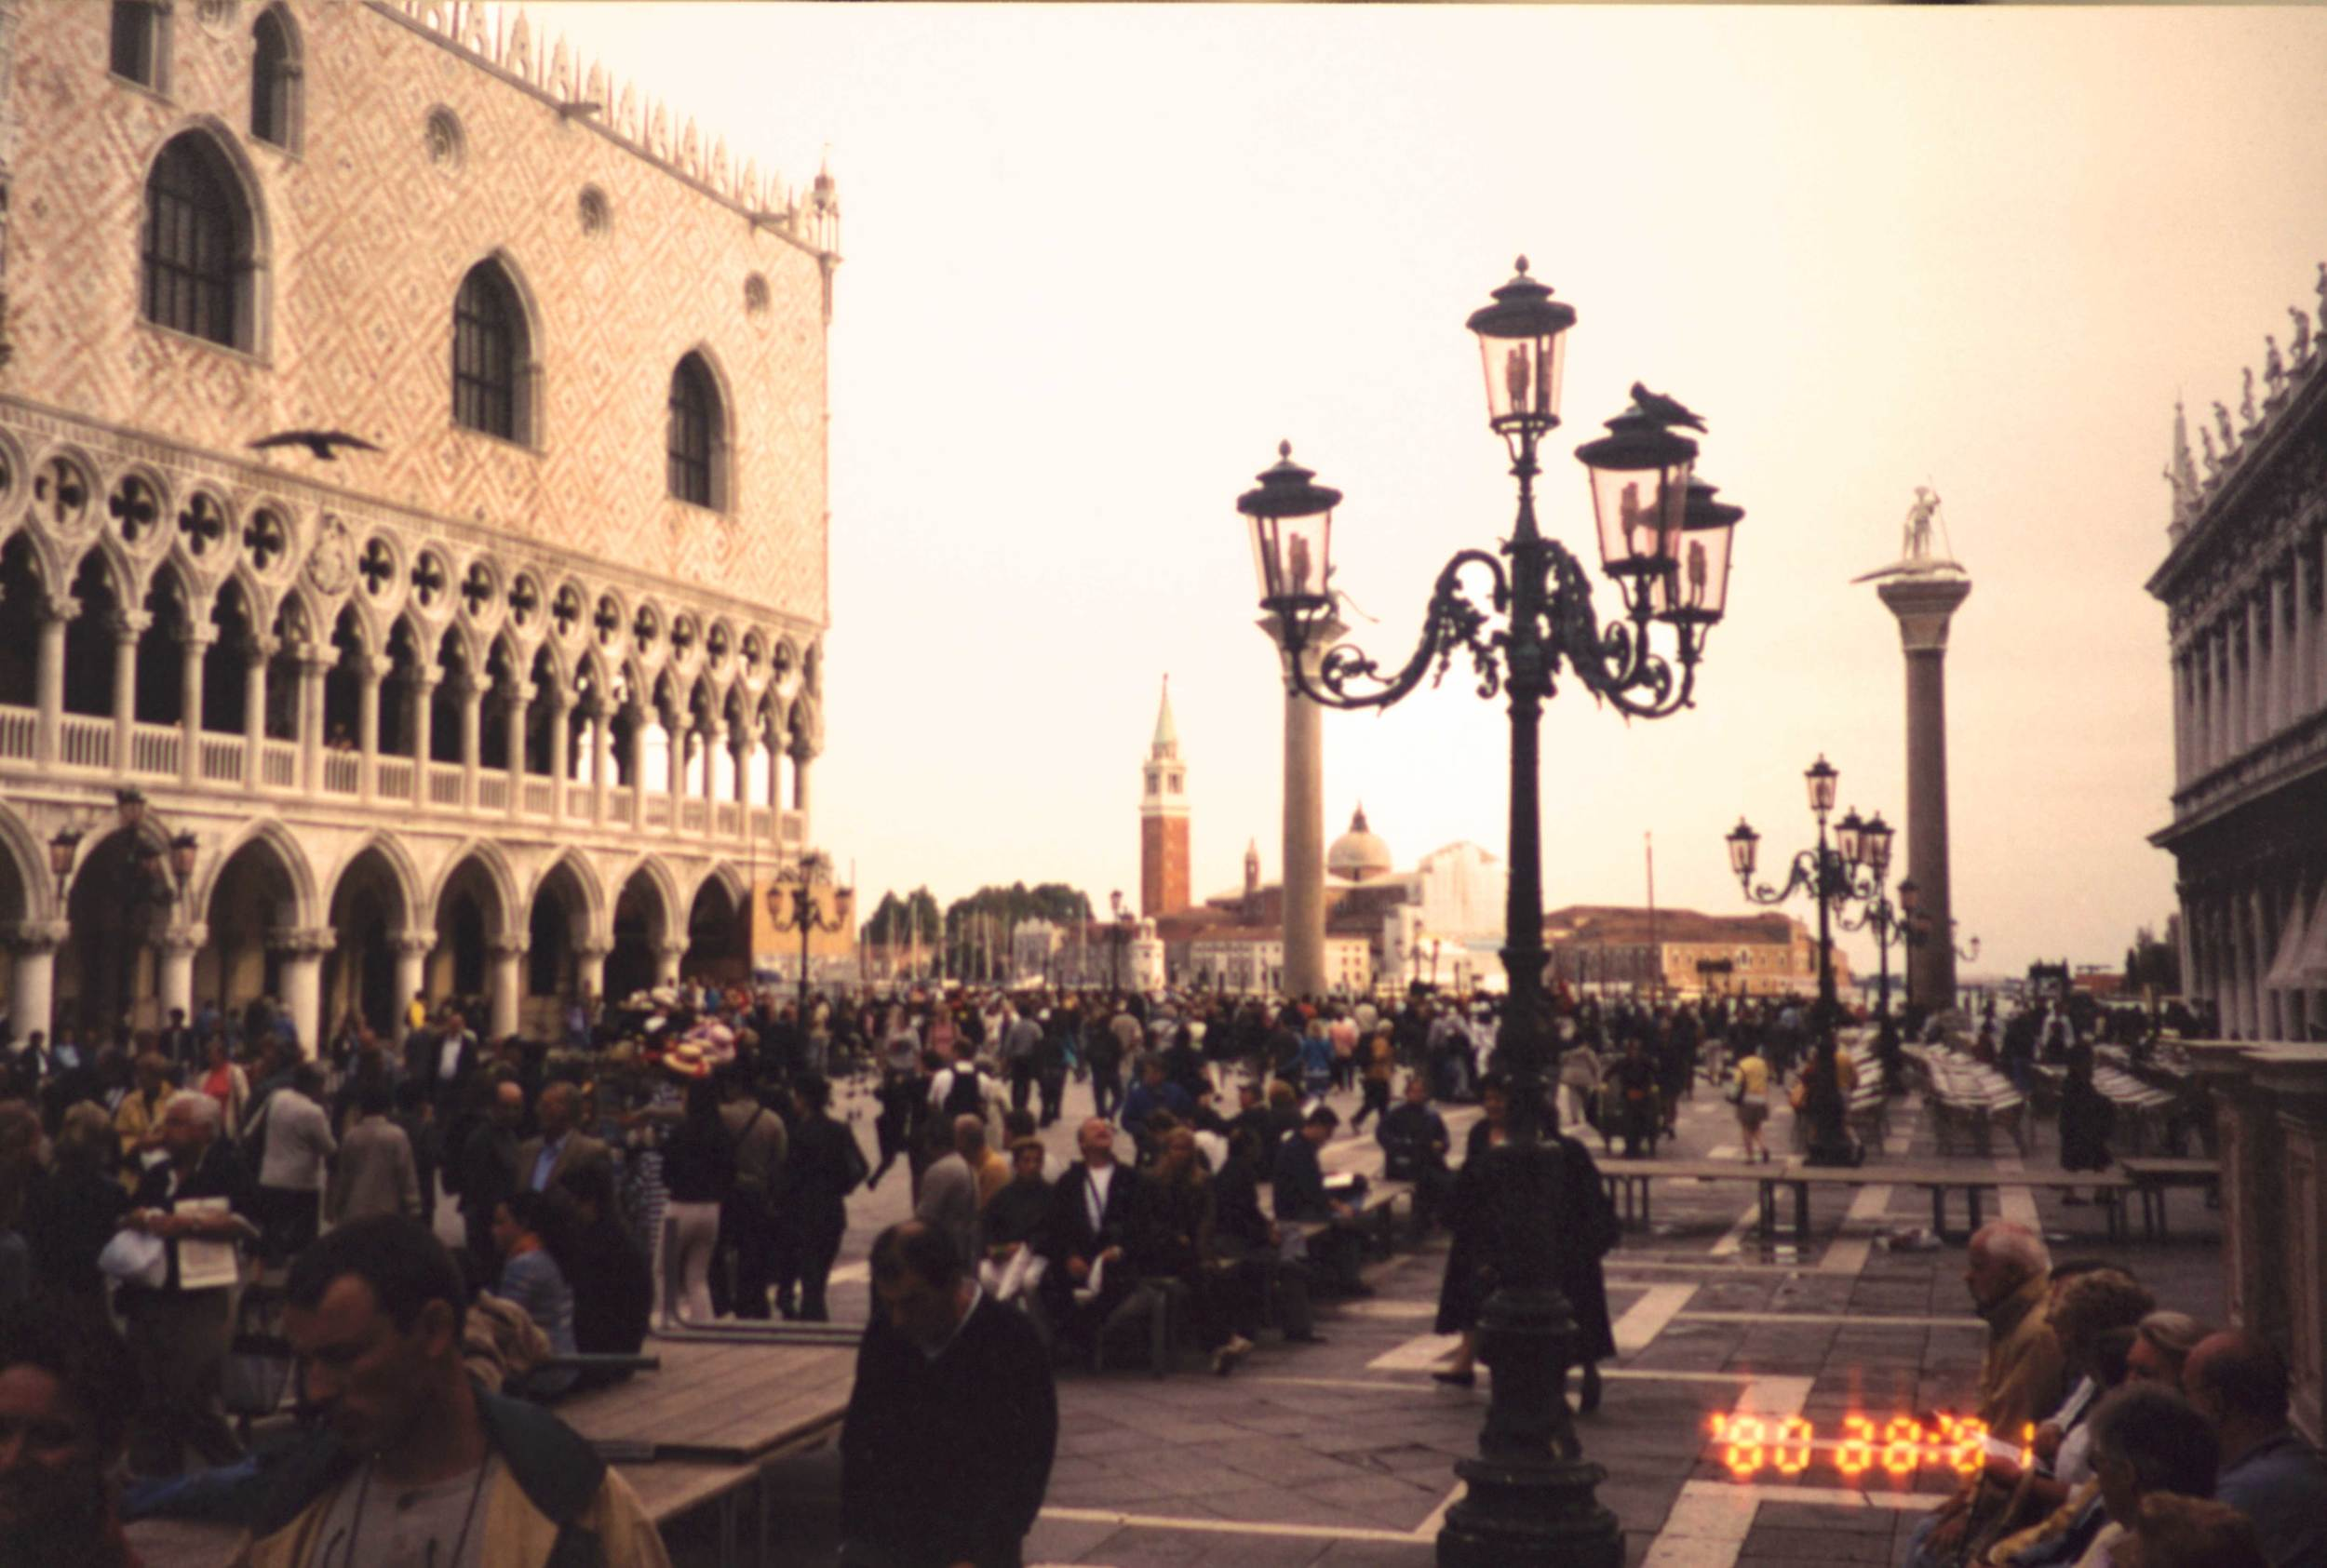 Piazza San Marco,Venice, Italy.Image©sourcingstyle.com